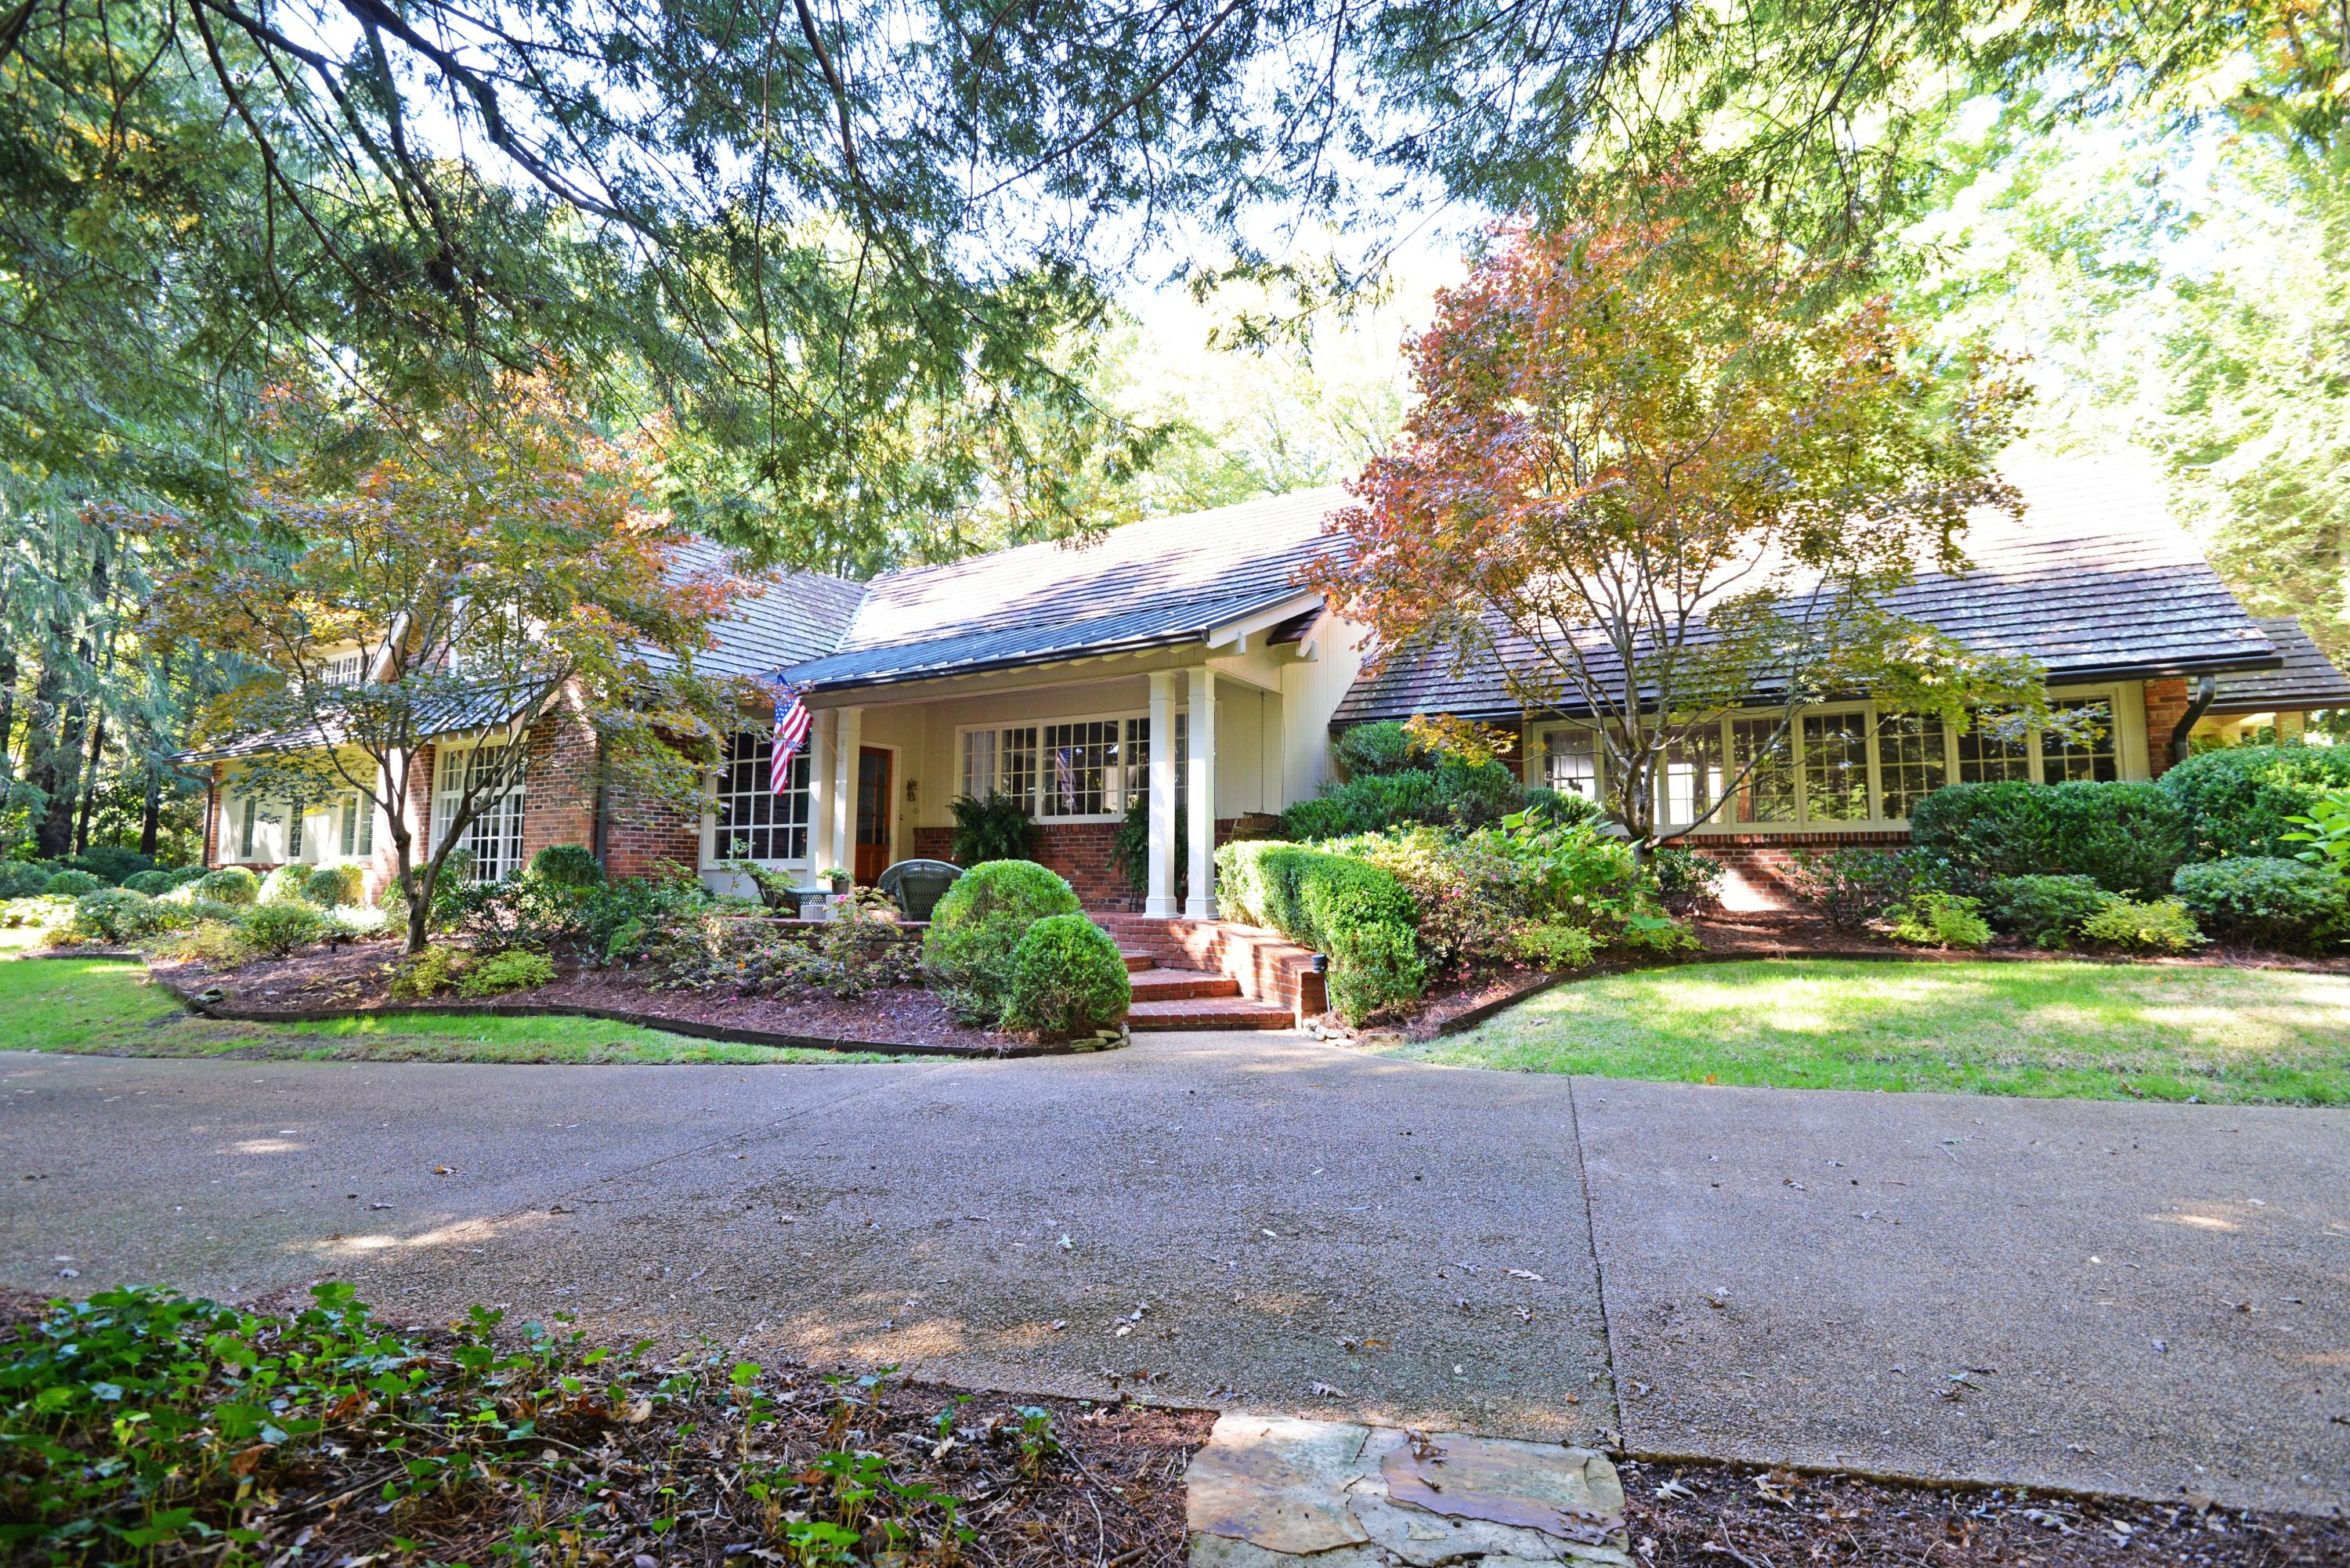 1001 Scenic Hwy, Lookout Mountain, TN 37350